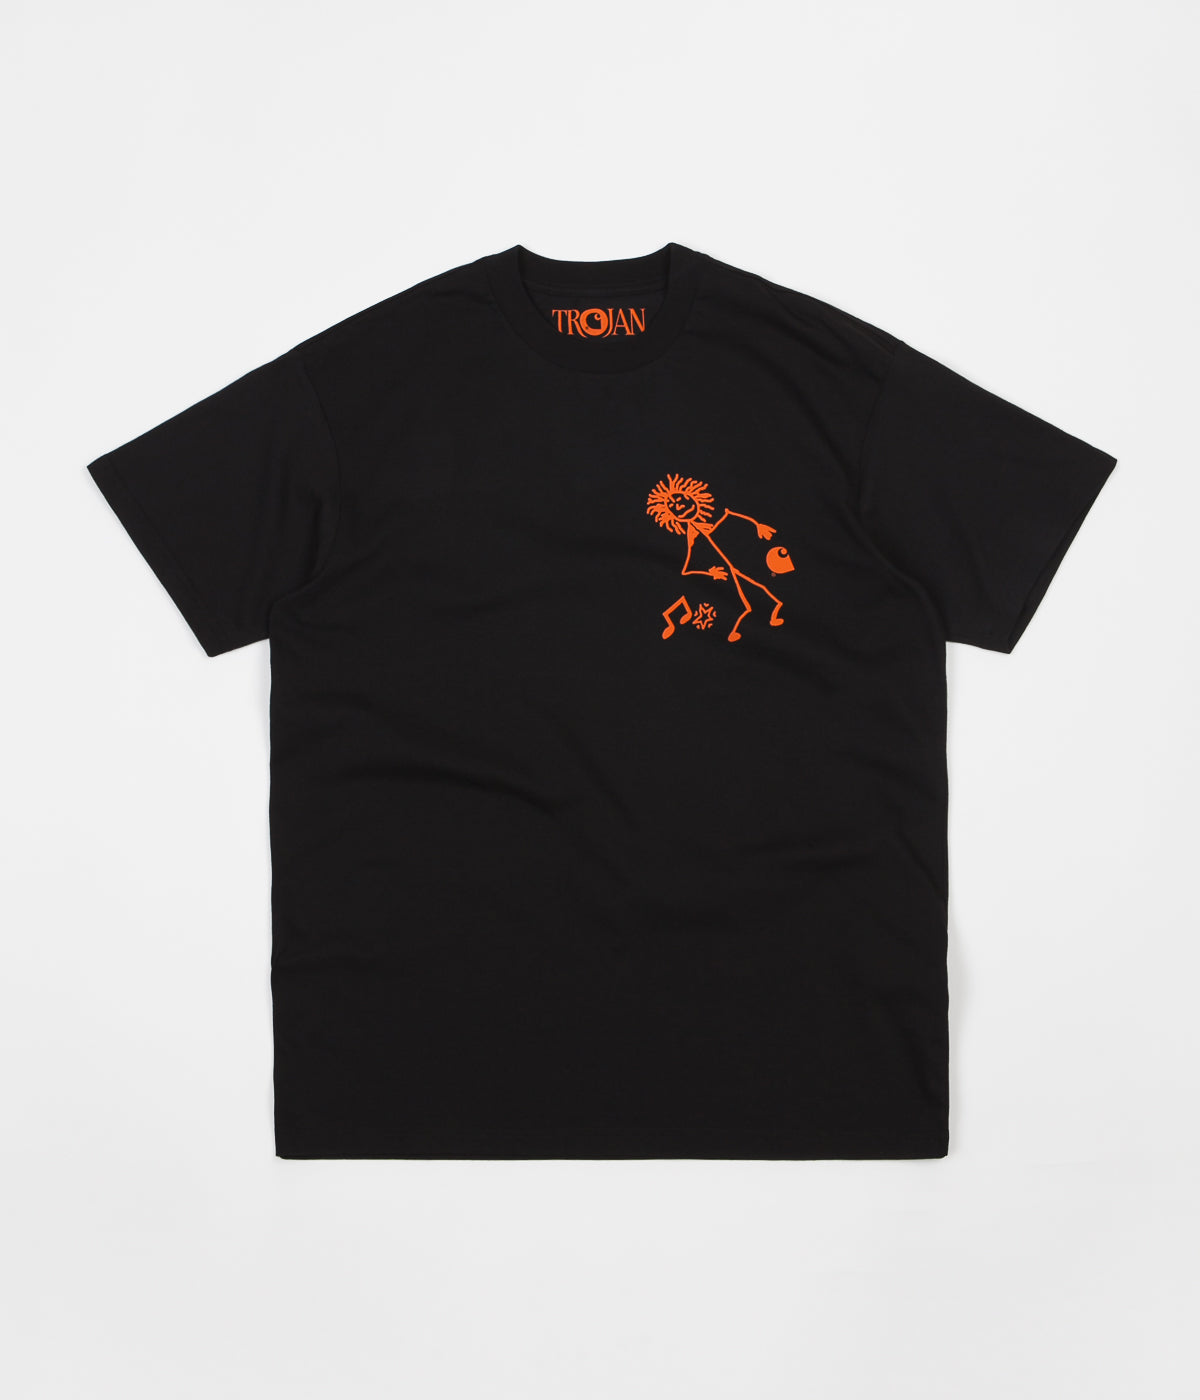 Carhartt x Trojan Records King Of Sound T-Shirt - Trojan Black